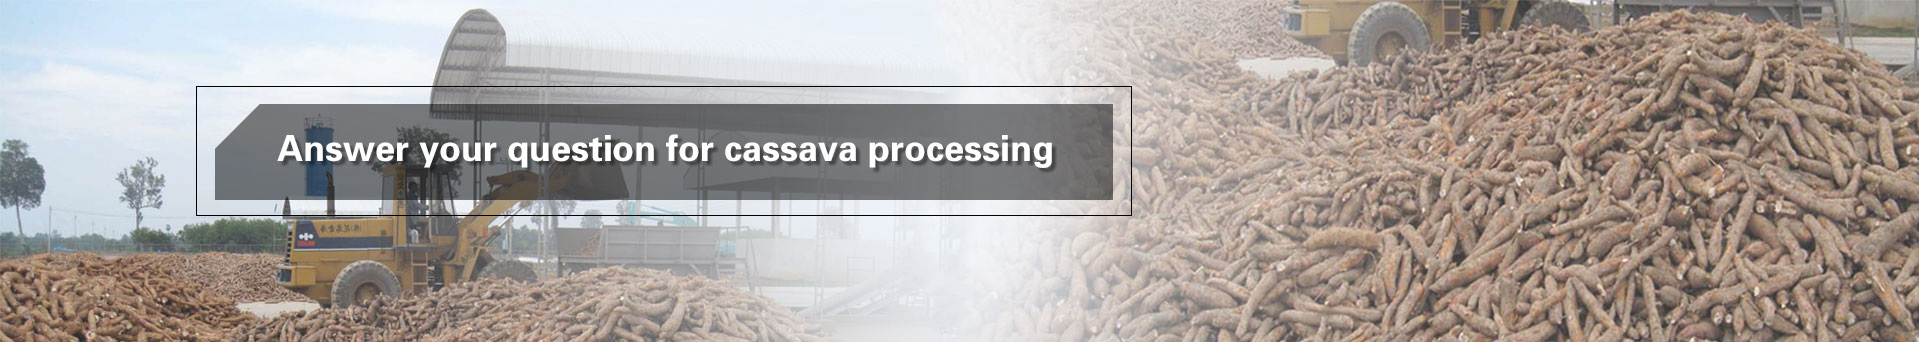 Cassava production and processing